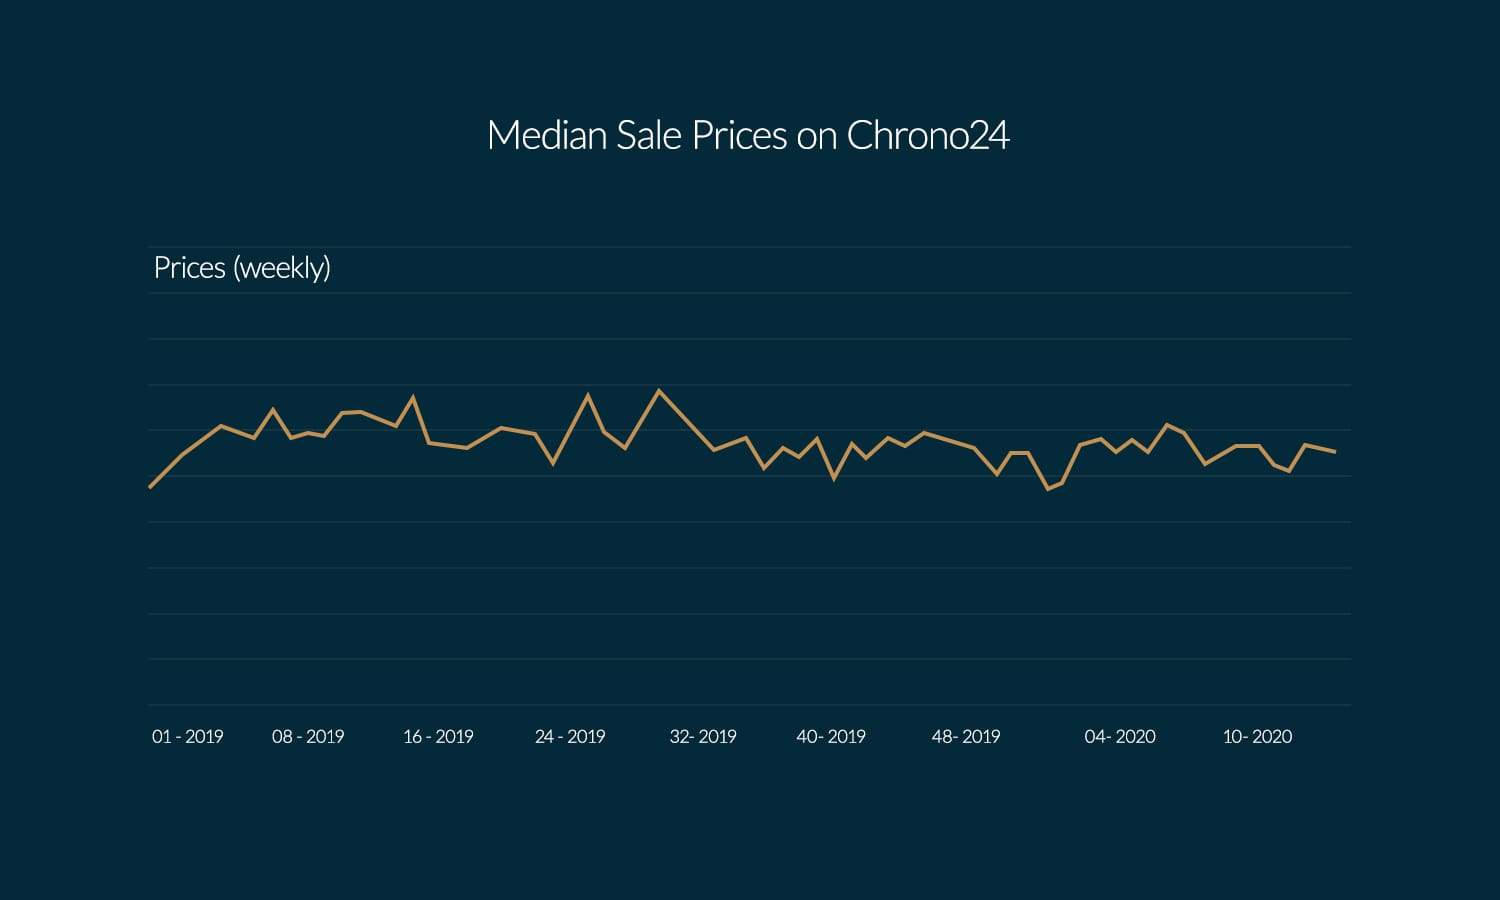 Development of the median sales price for watch models on Chrono24 (2019 – mid April 2020)